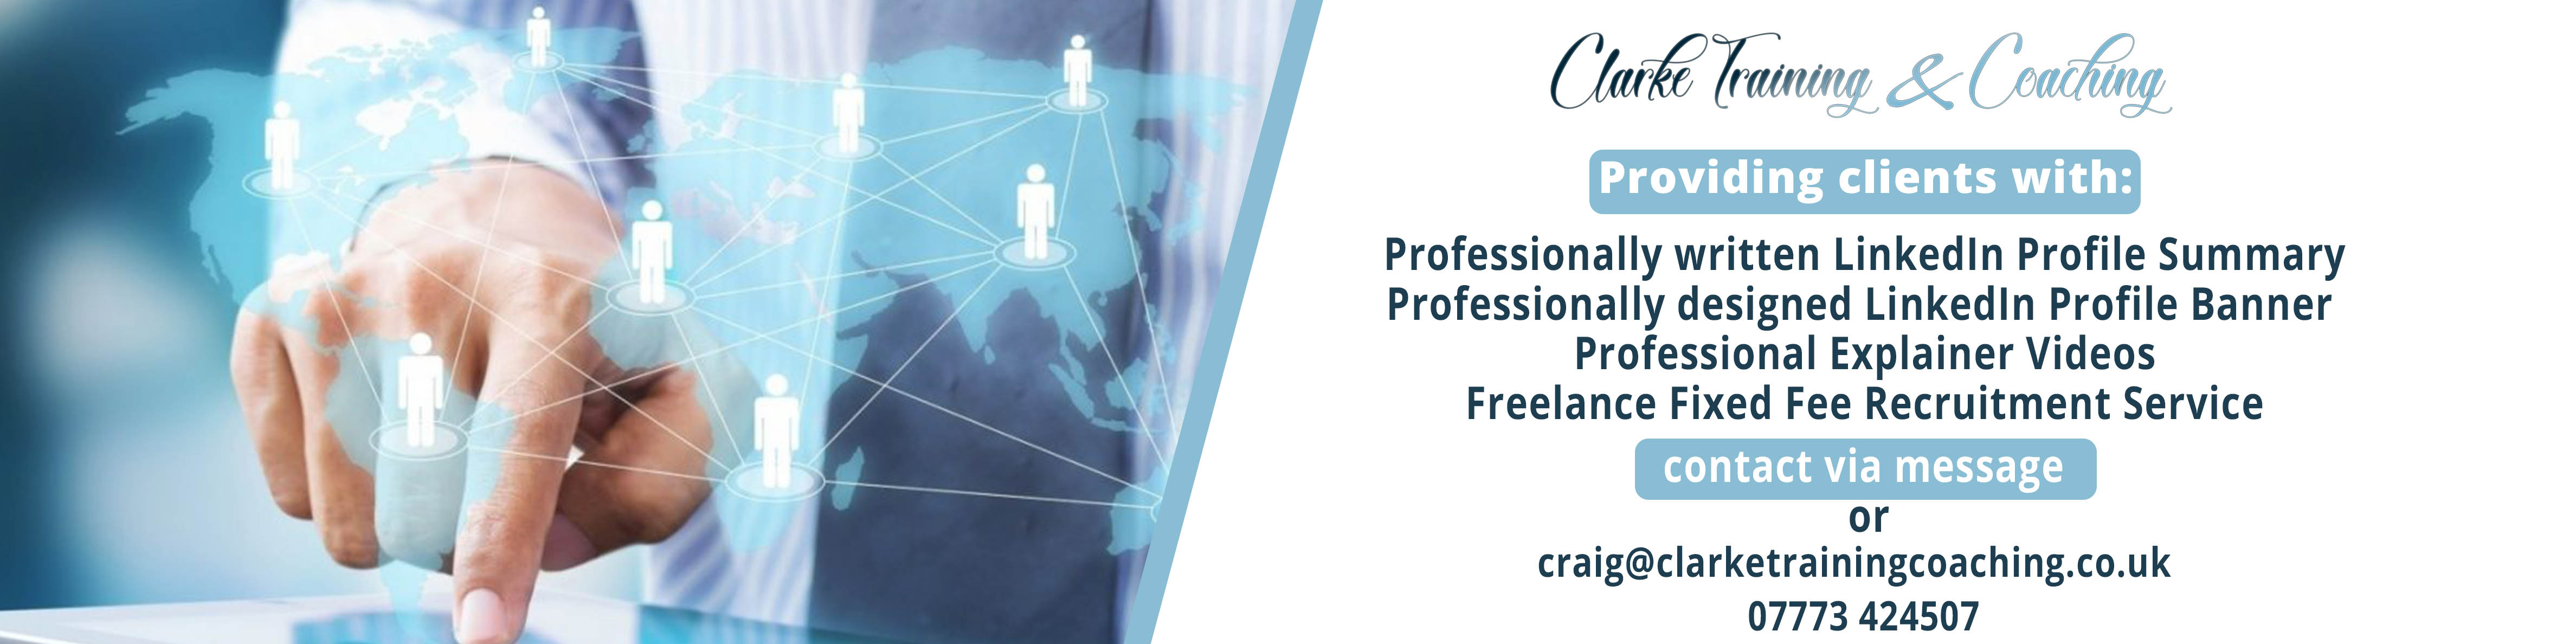 Create a professional Facebook Cover/Banner